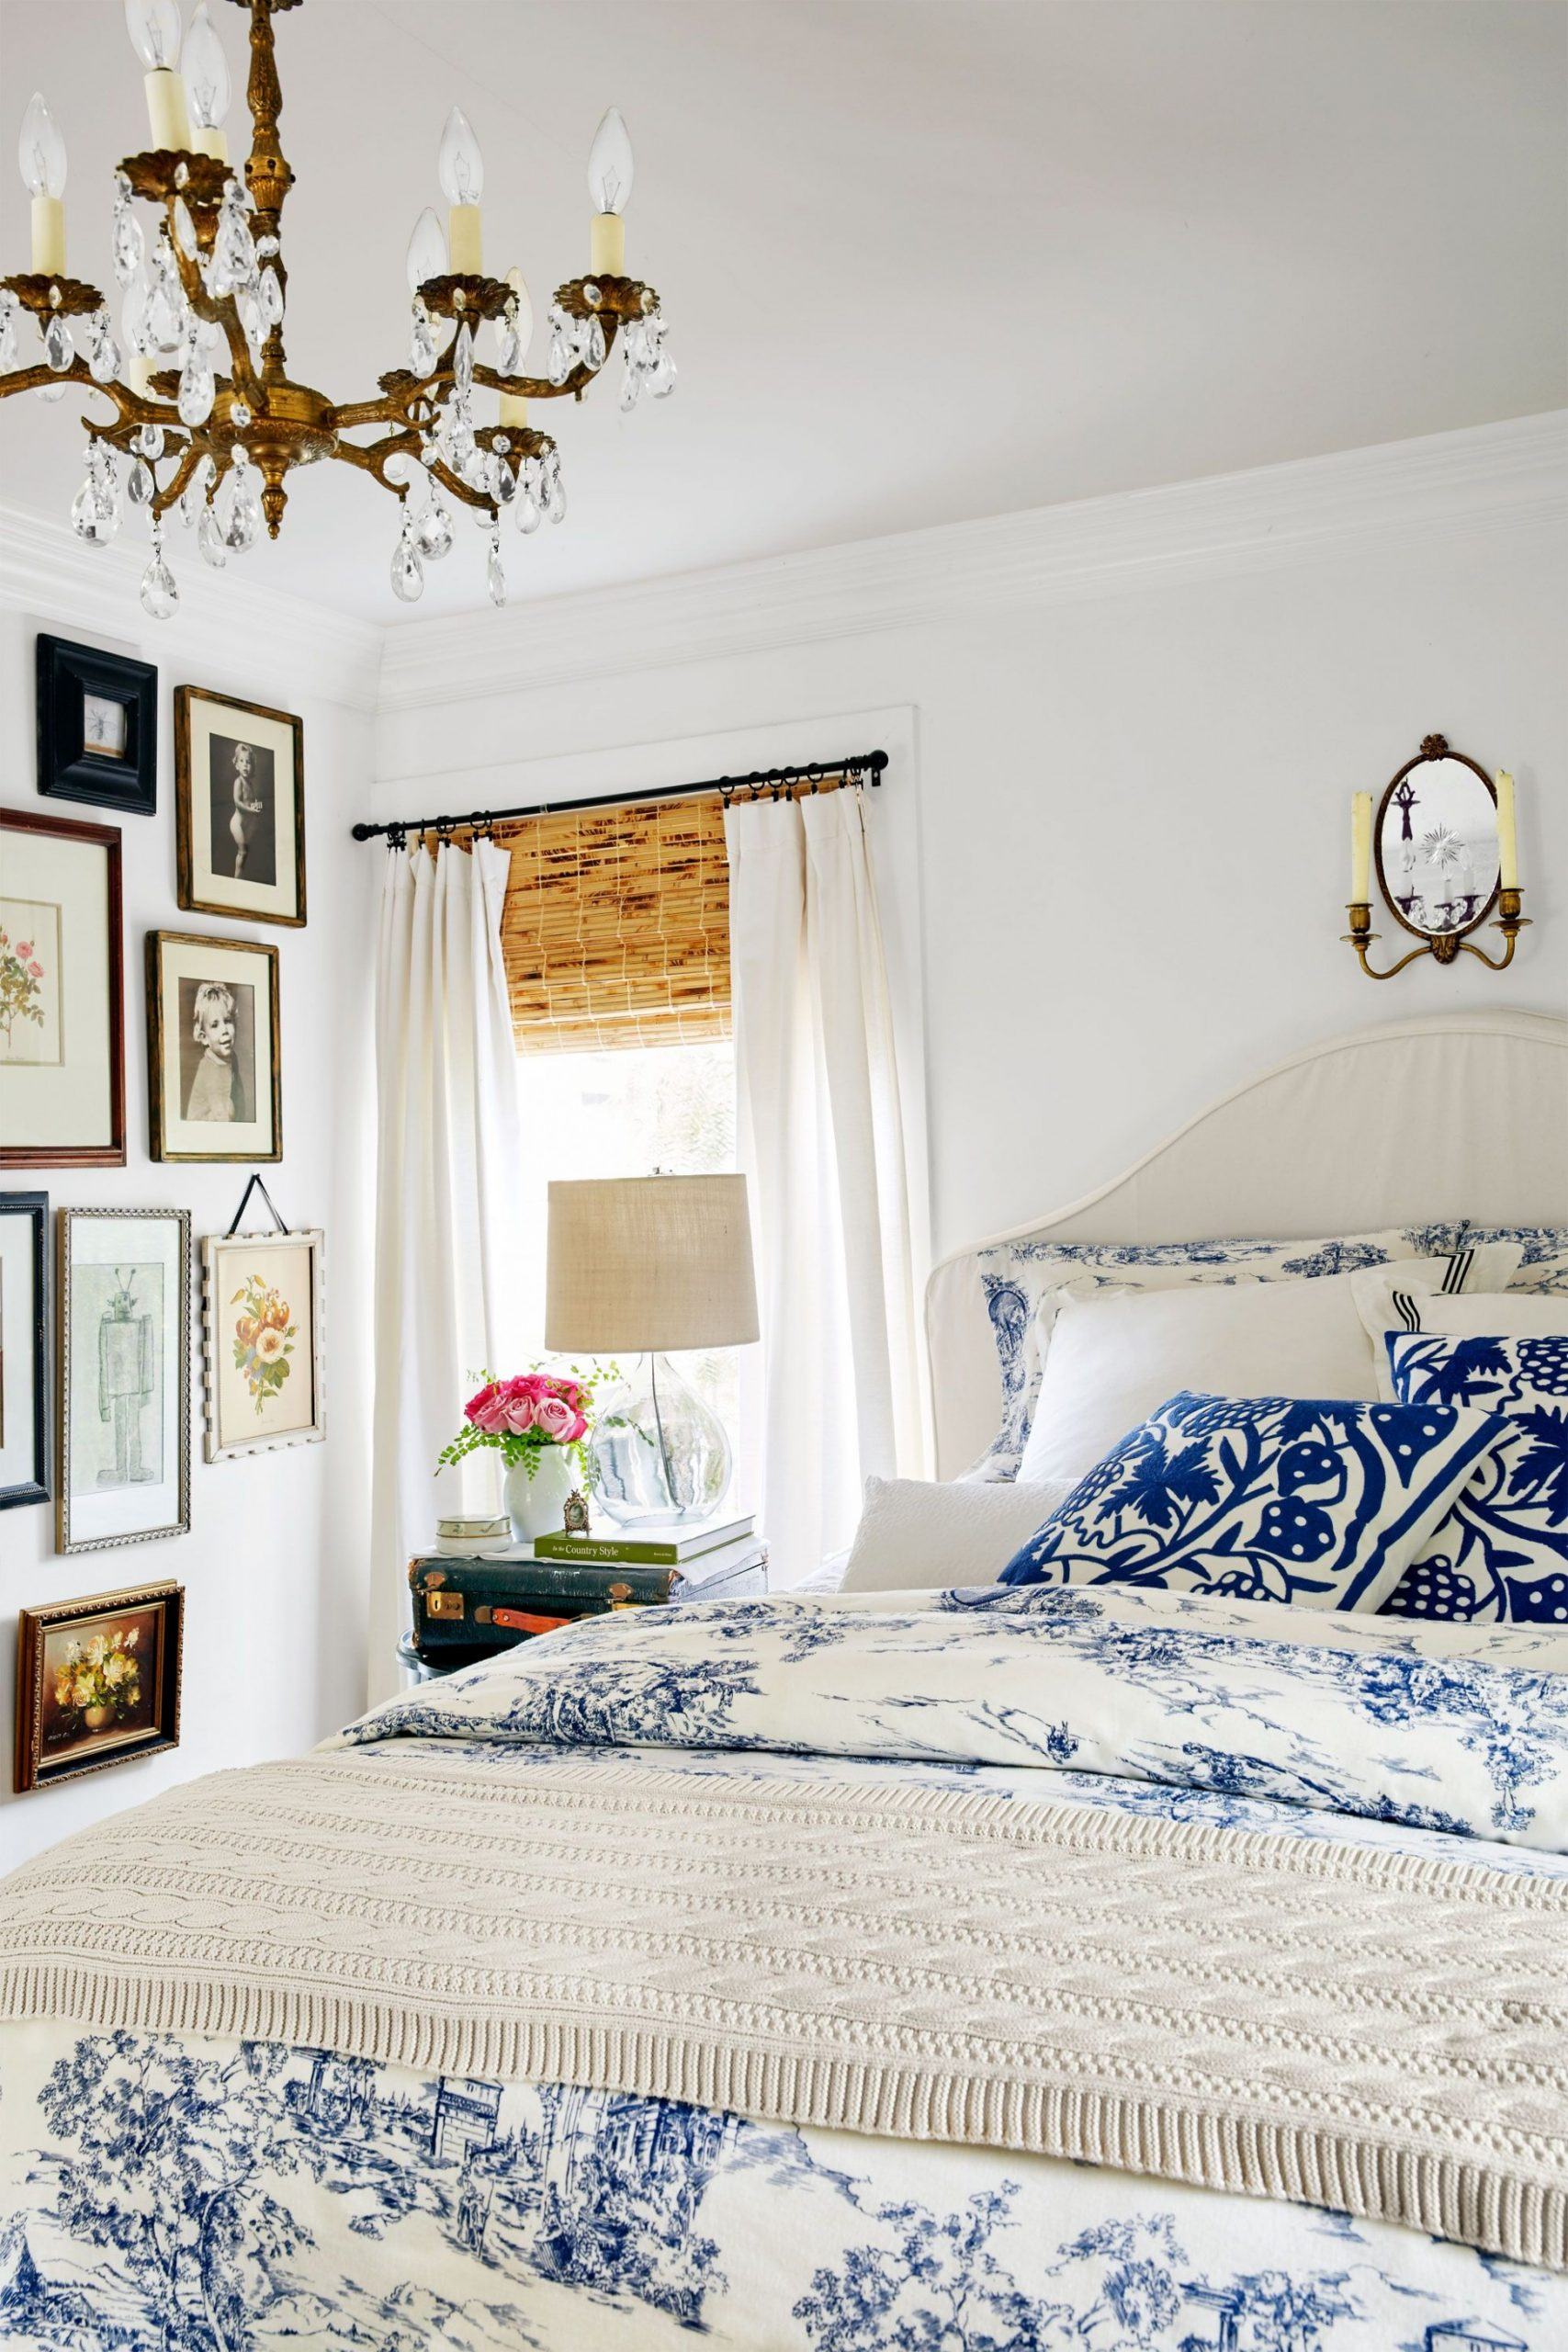 11+ Bedroom Decorating Ideas in 11 - Designs for Beautiful Bedrooms - Bedroom Ideas English Country